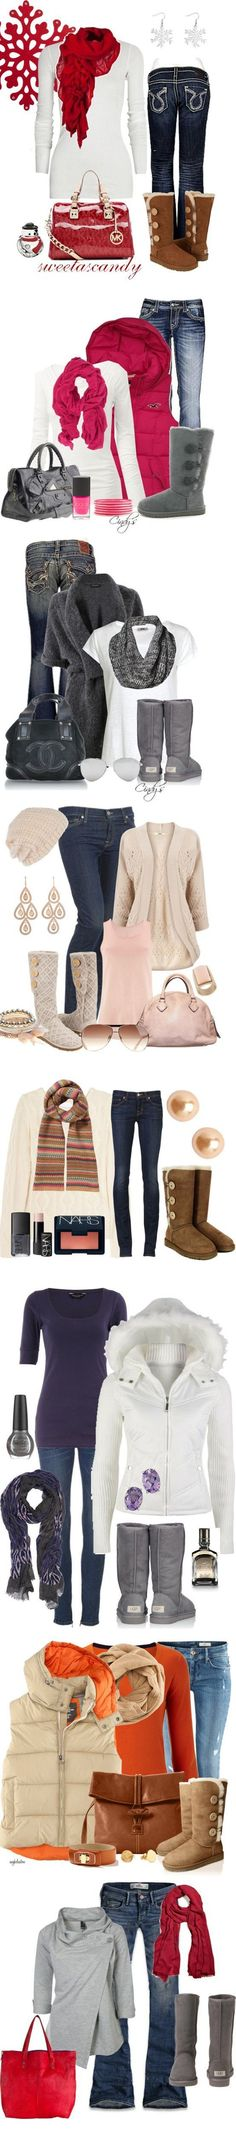 I want the scarves!! And I love the outfits!